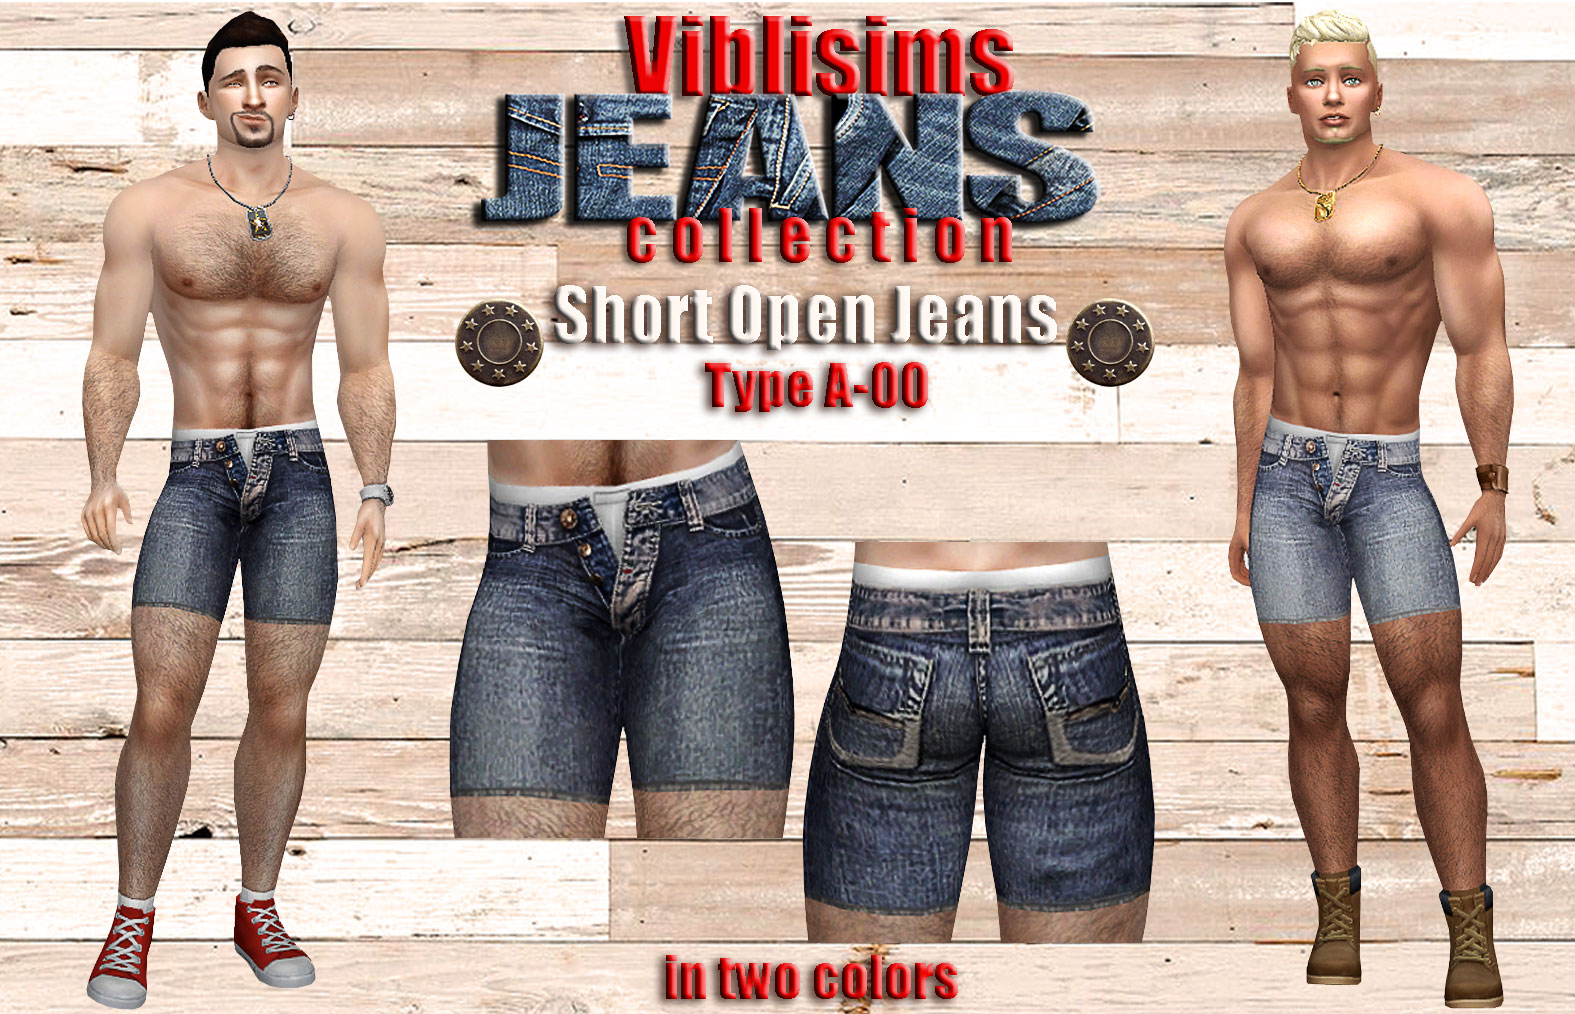 Short Open Jeans  Type A-00 - Viblisims Jeans Collection by ciaolatino38